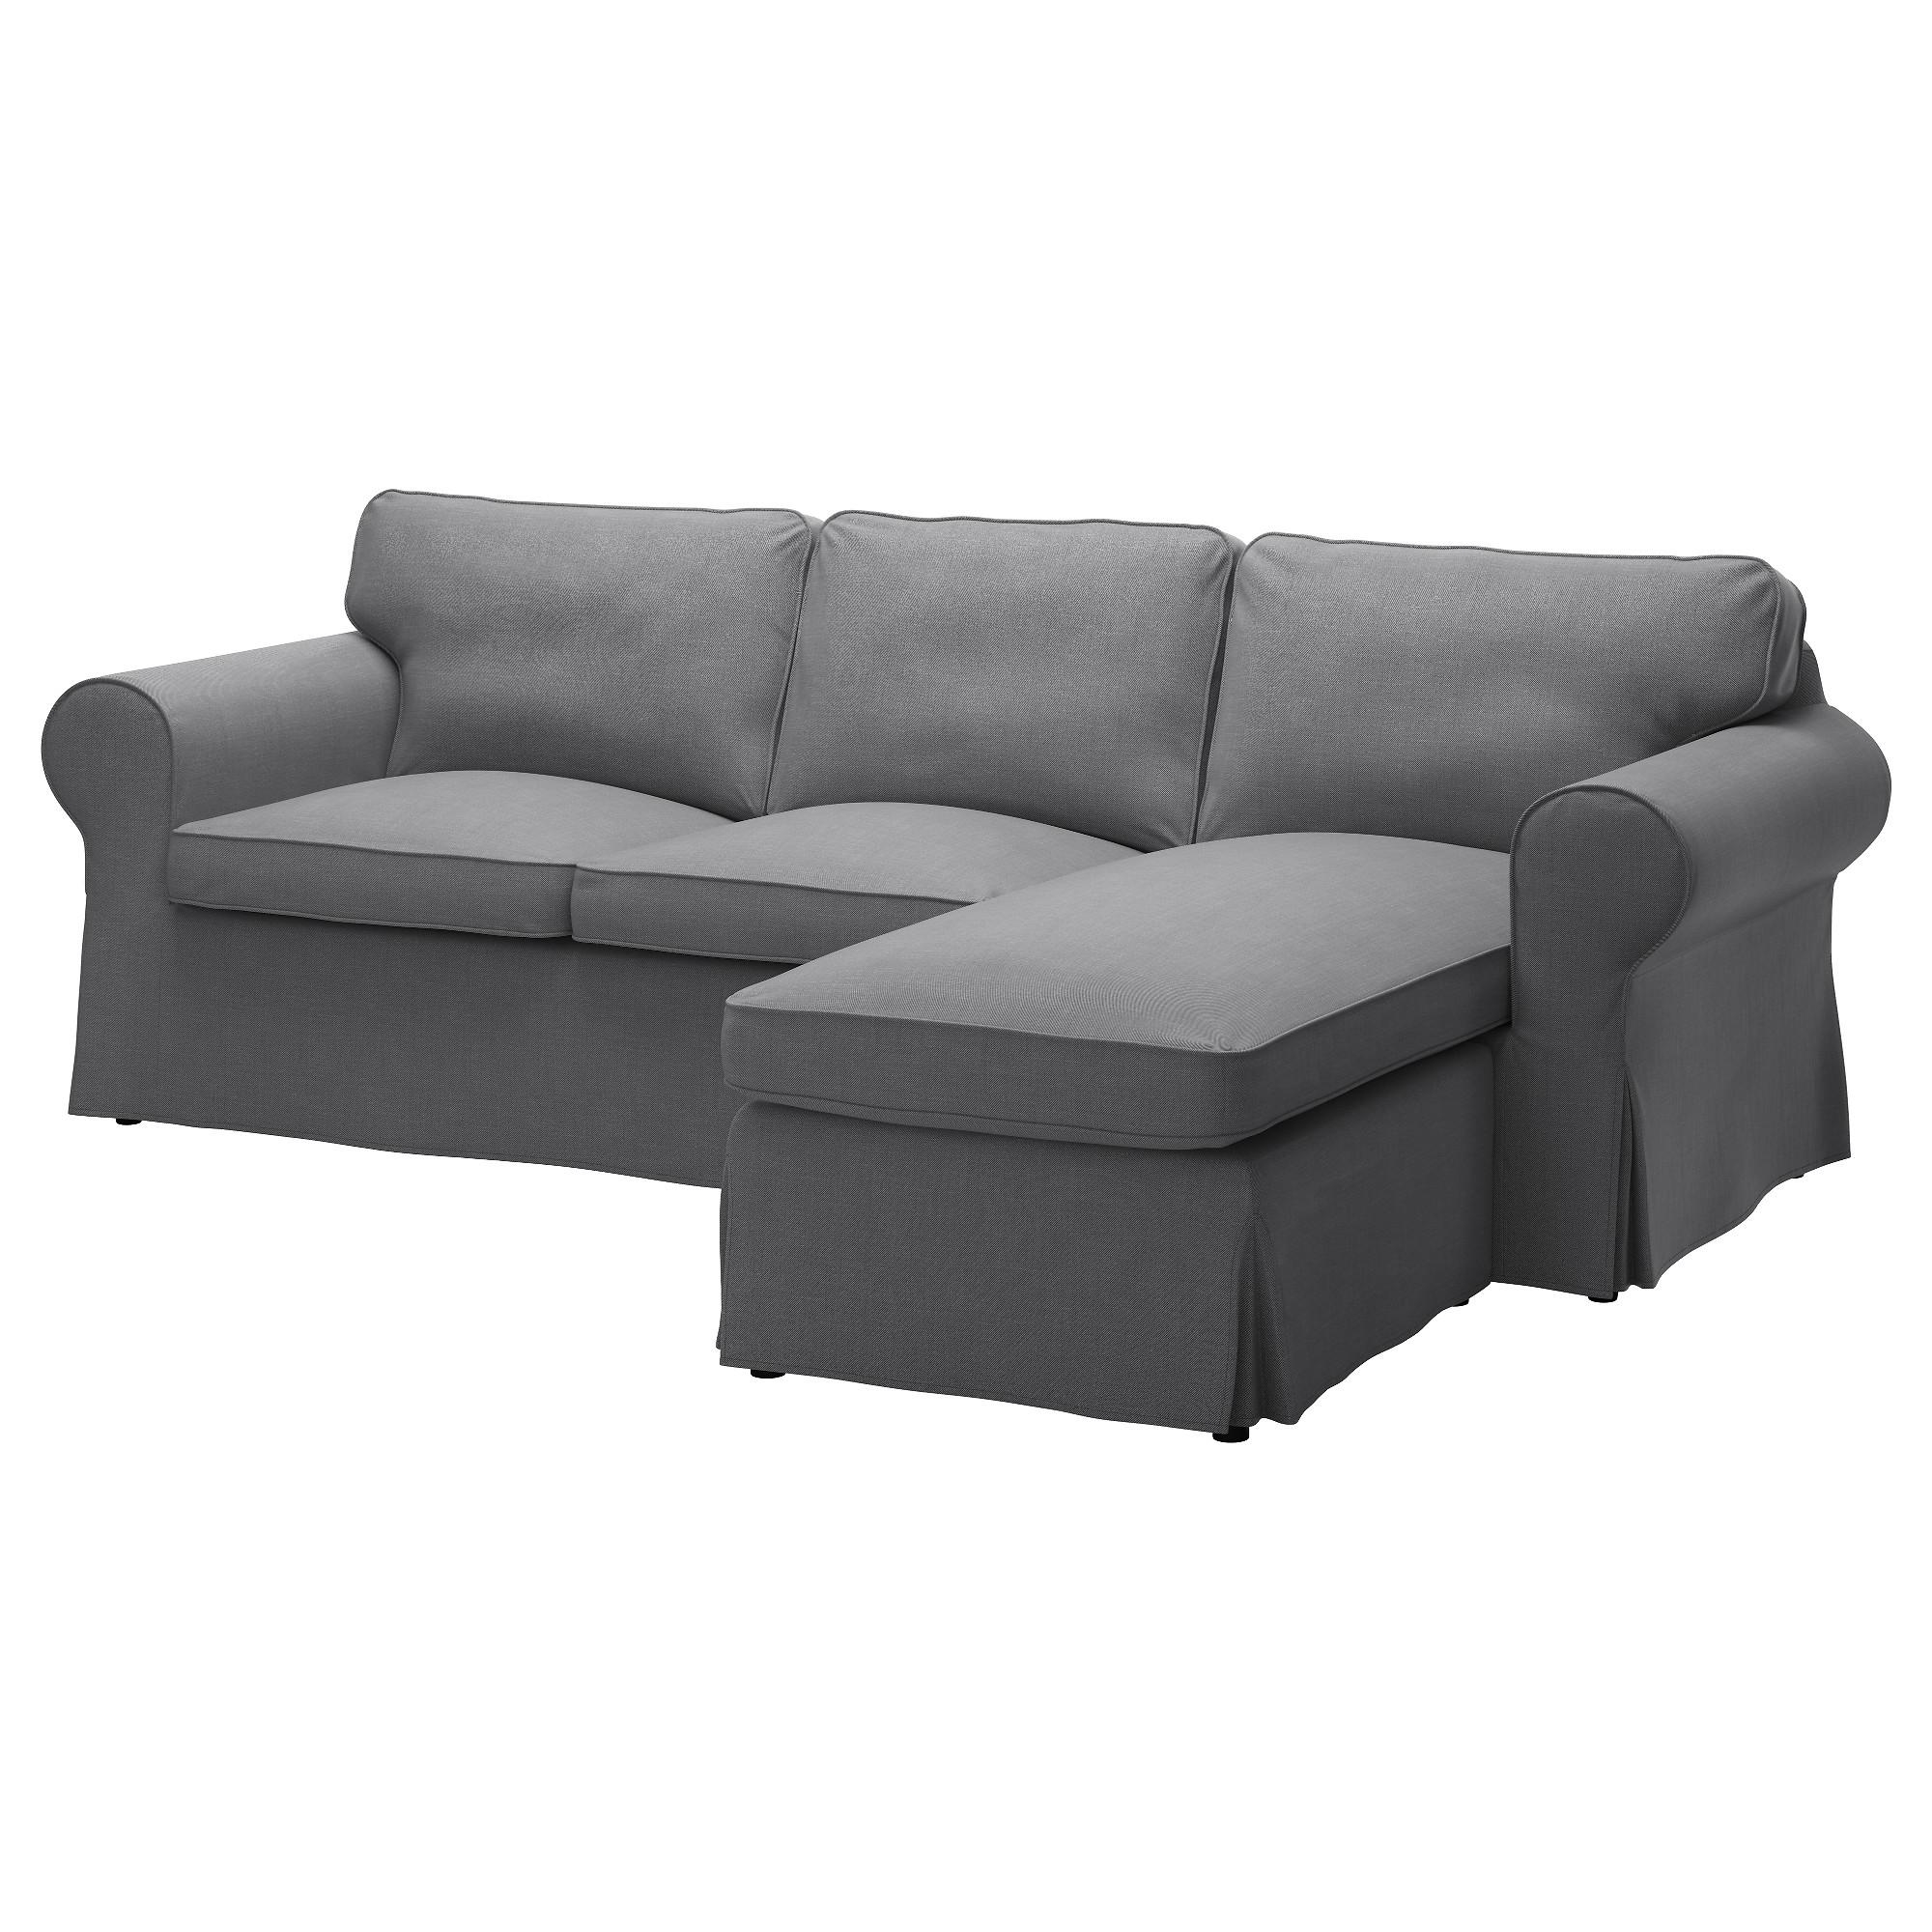 Featured Image of Ikea Chaise Lounge Sofa